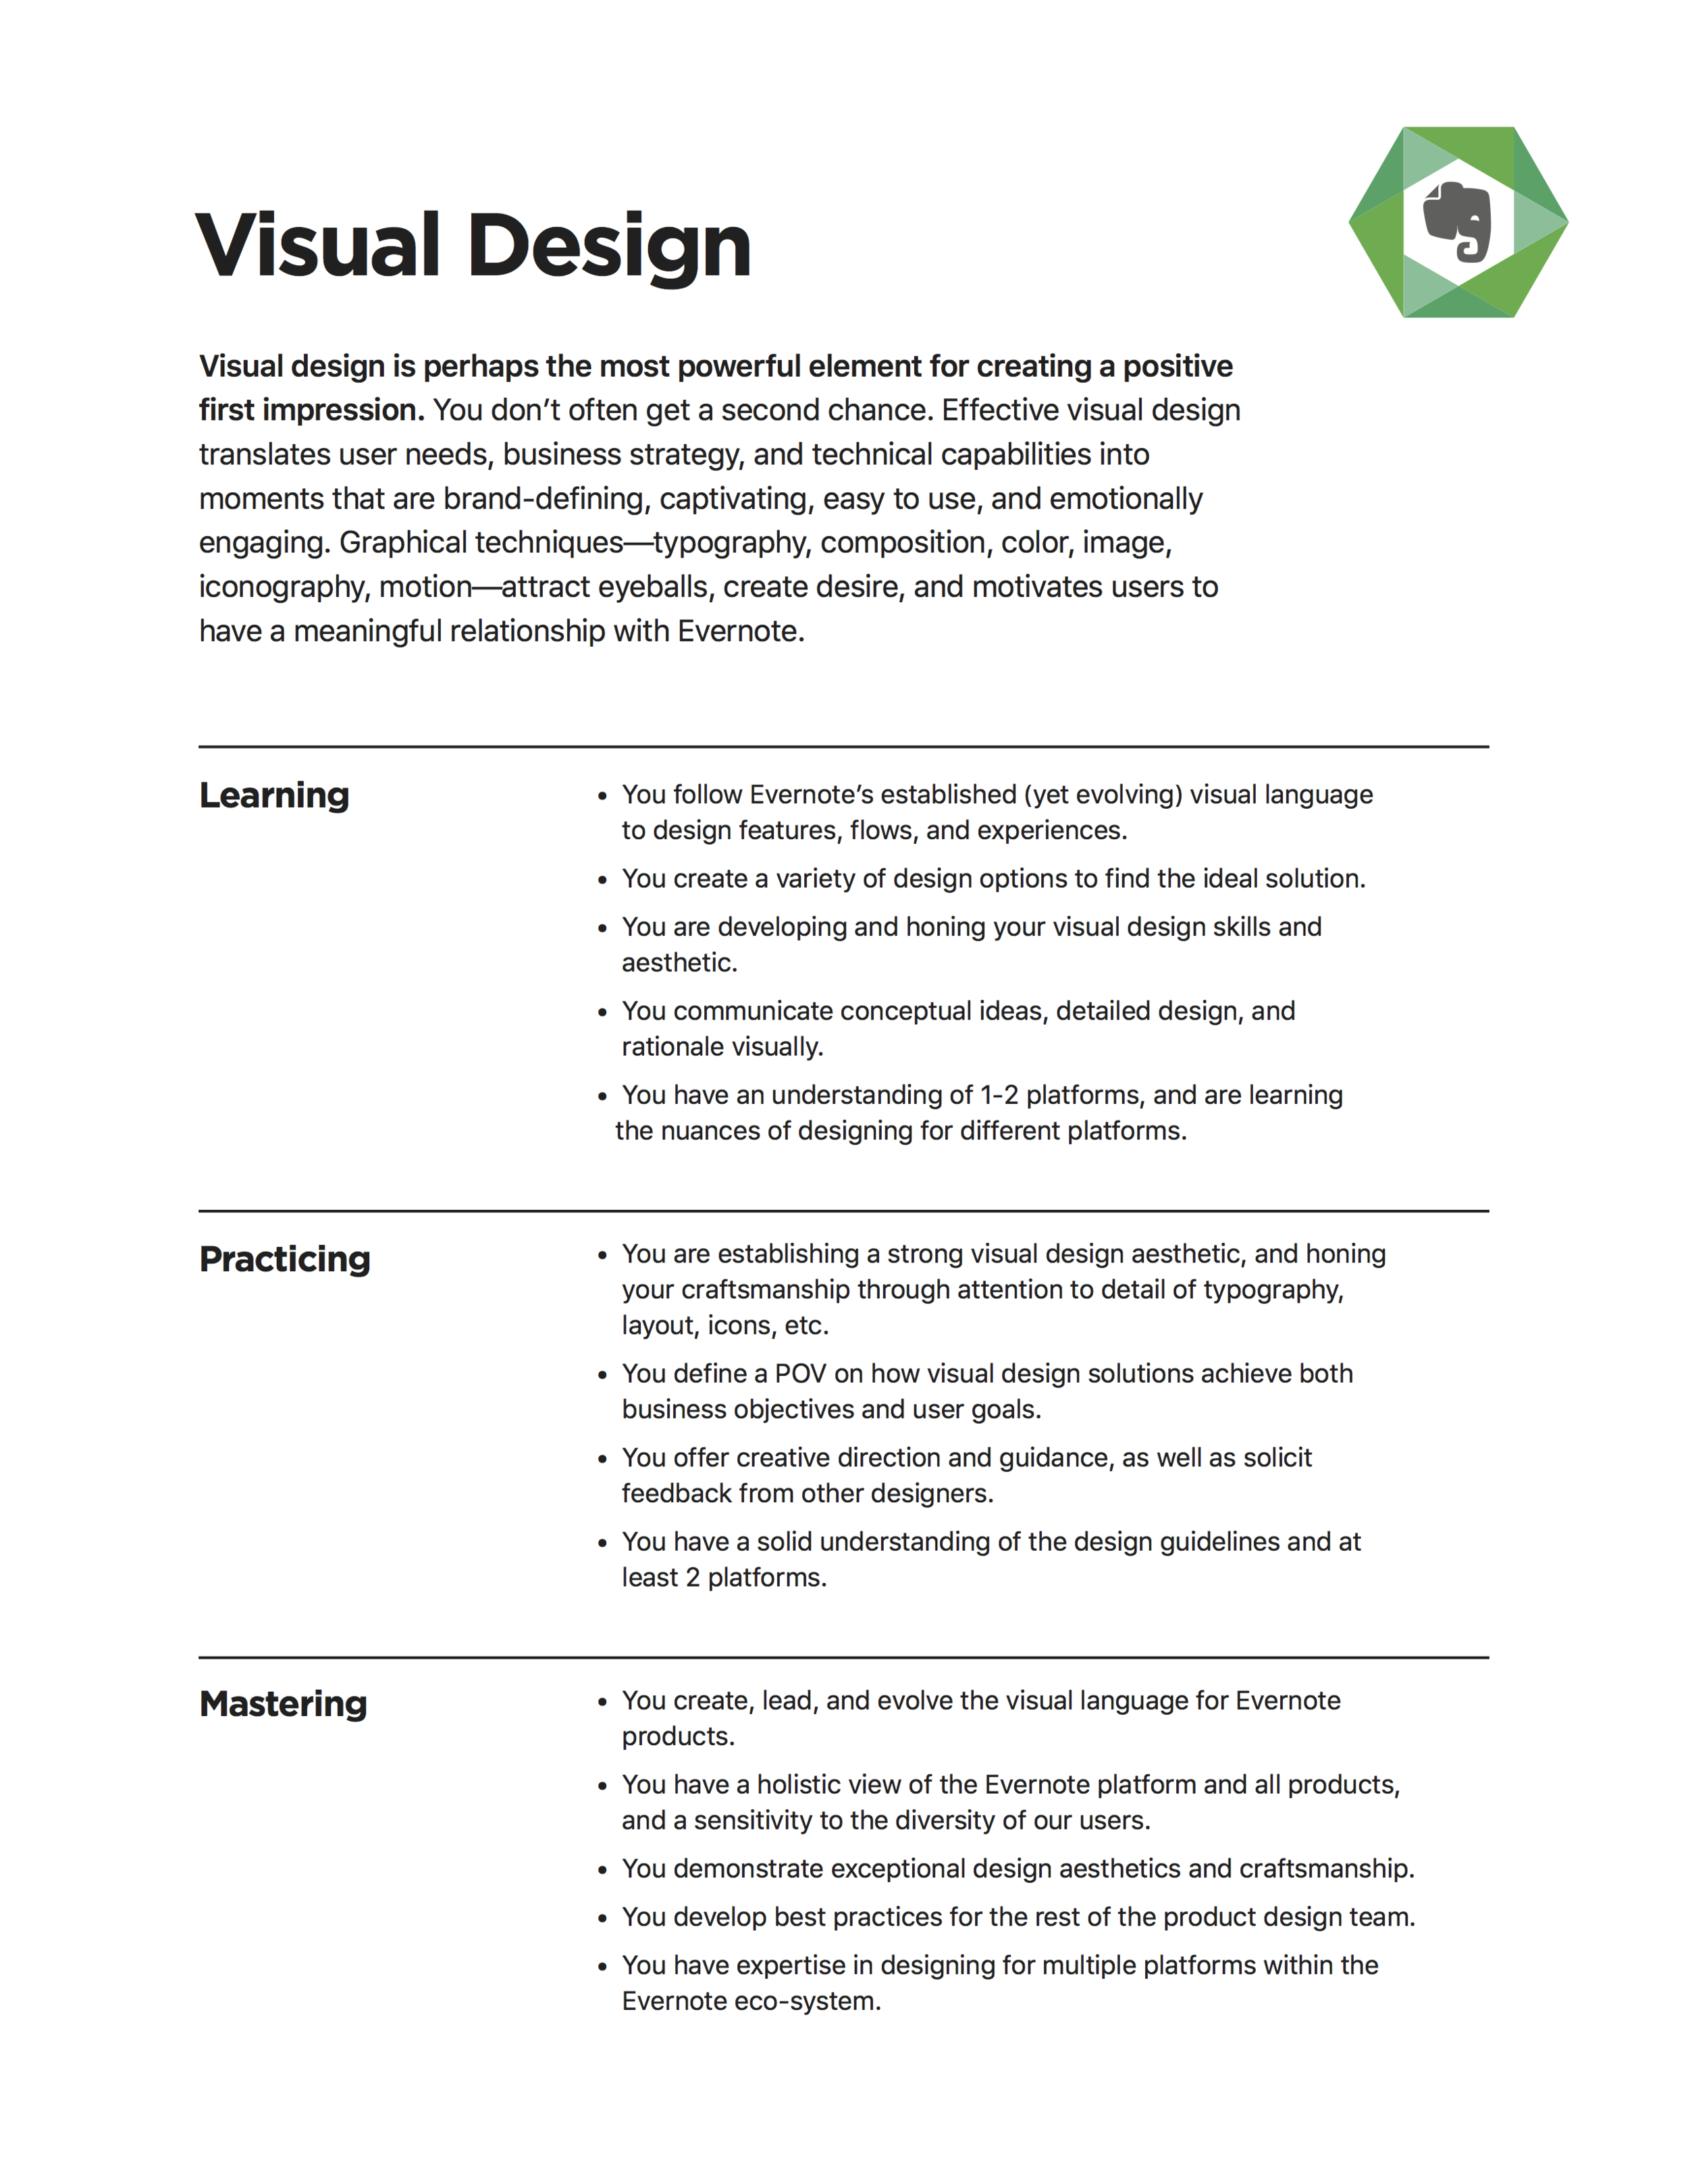 Example of one of the 9 Design Superstars skills